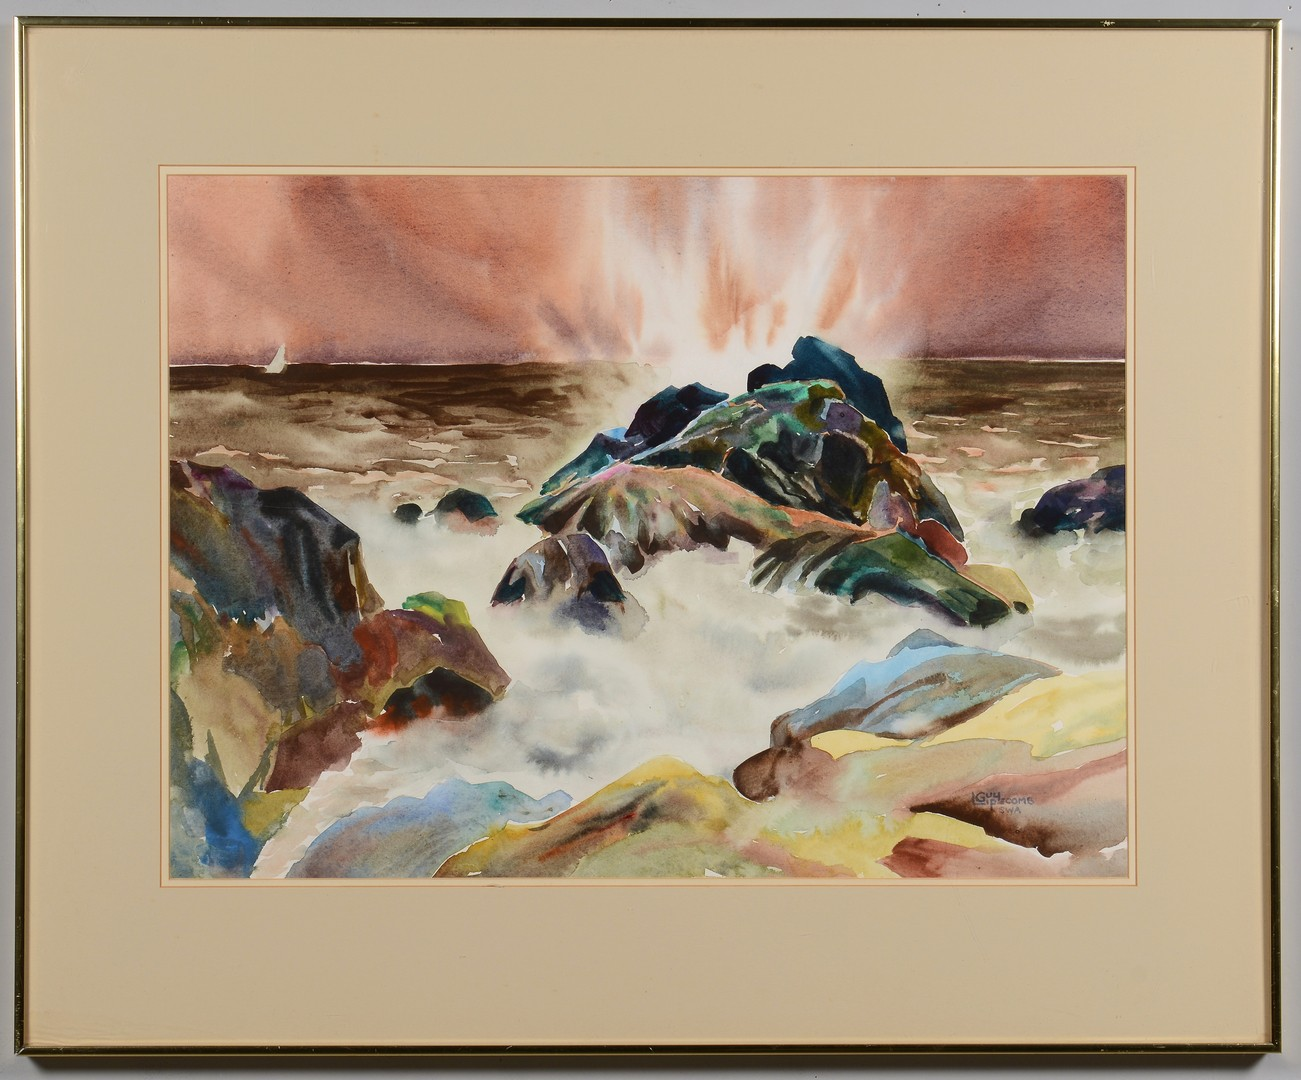 Lot 3832447: Guy Lipscomb Seascape Watercolor